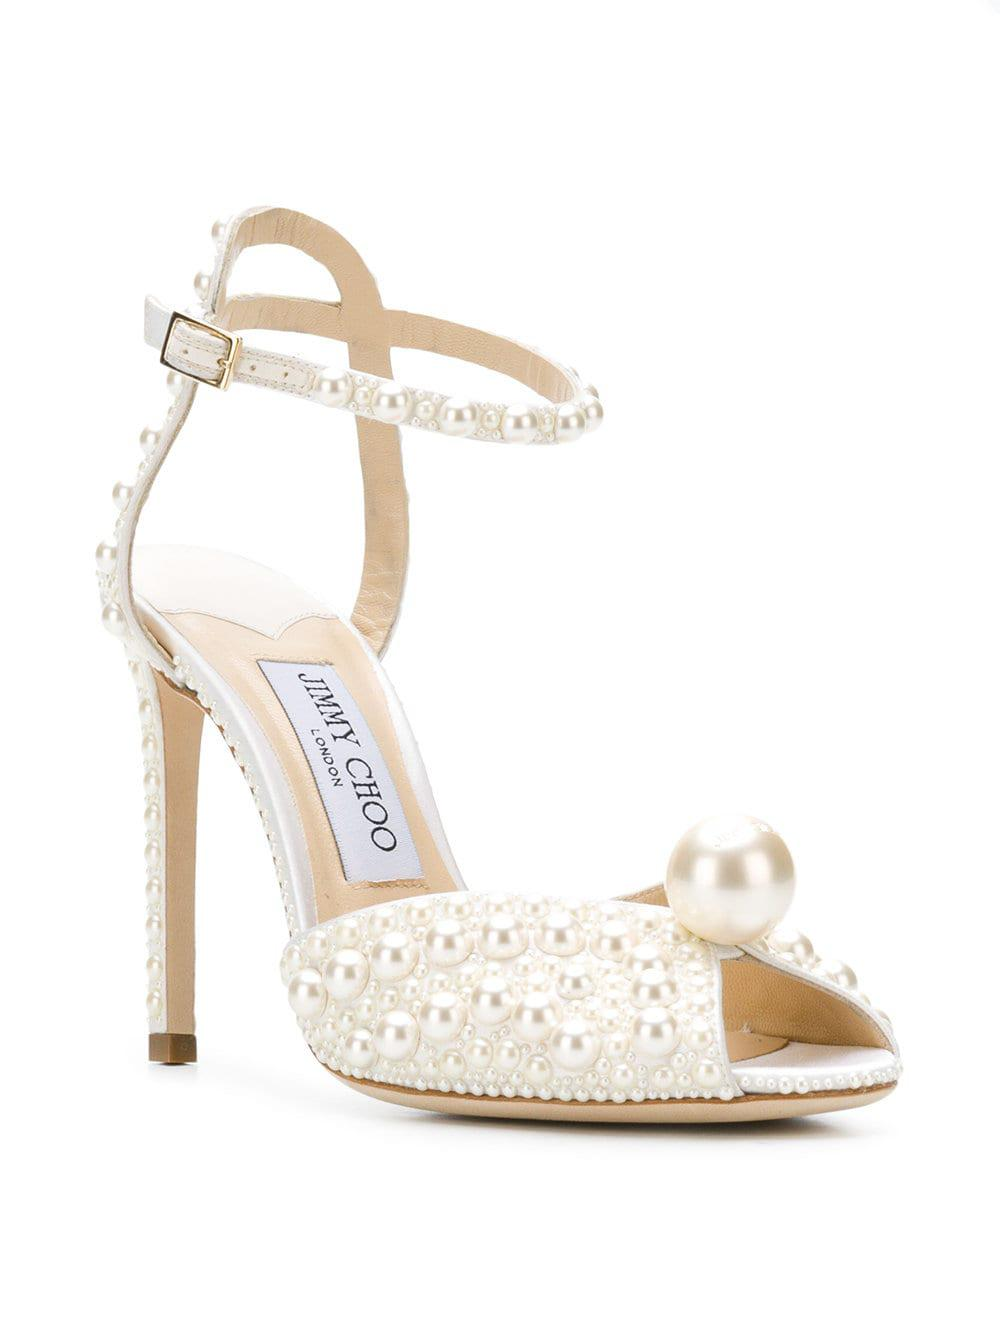 b9523bdb886e Jimmy Choo Sacora 100 Sandals in White - Save 44% - Lyst